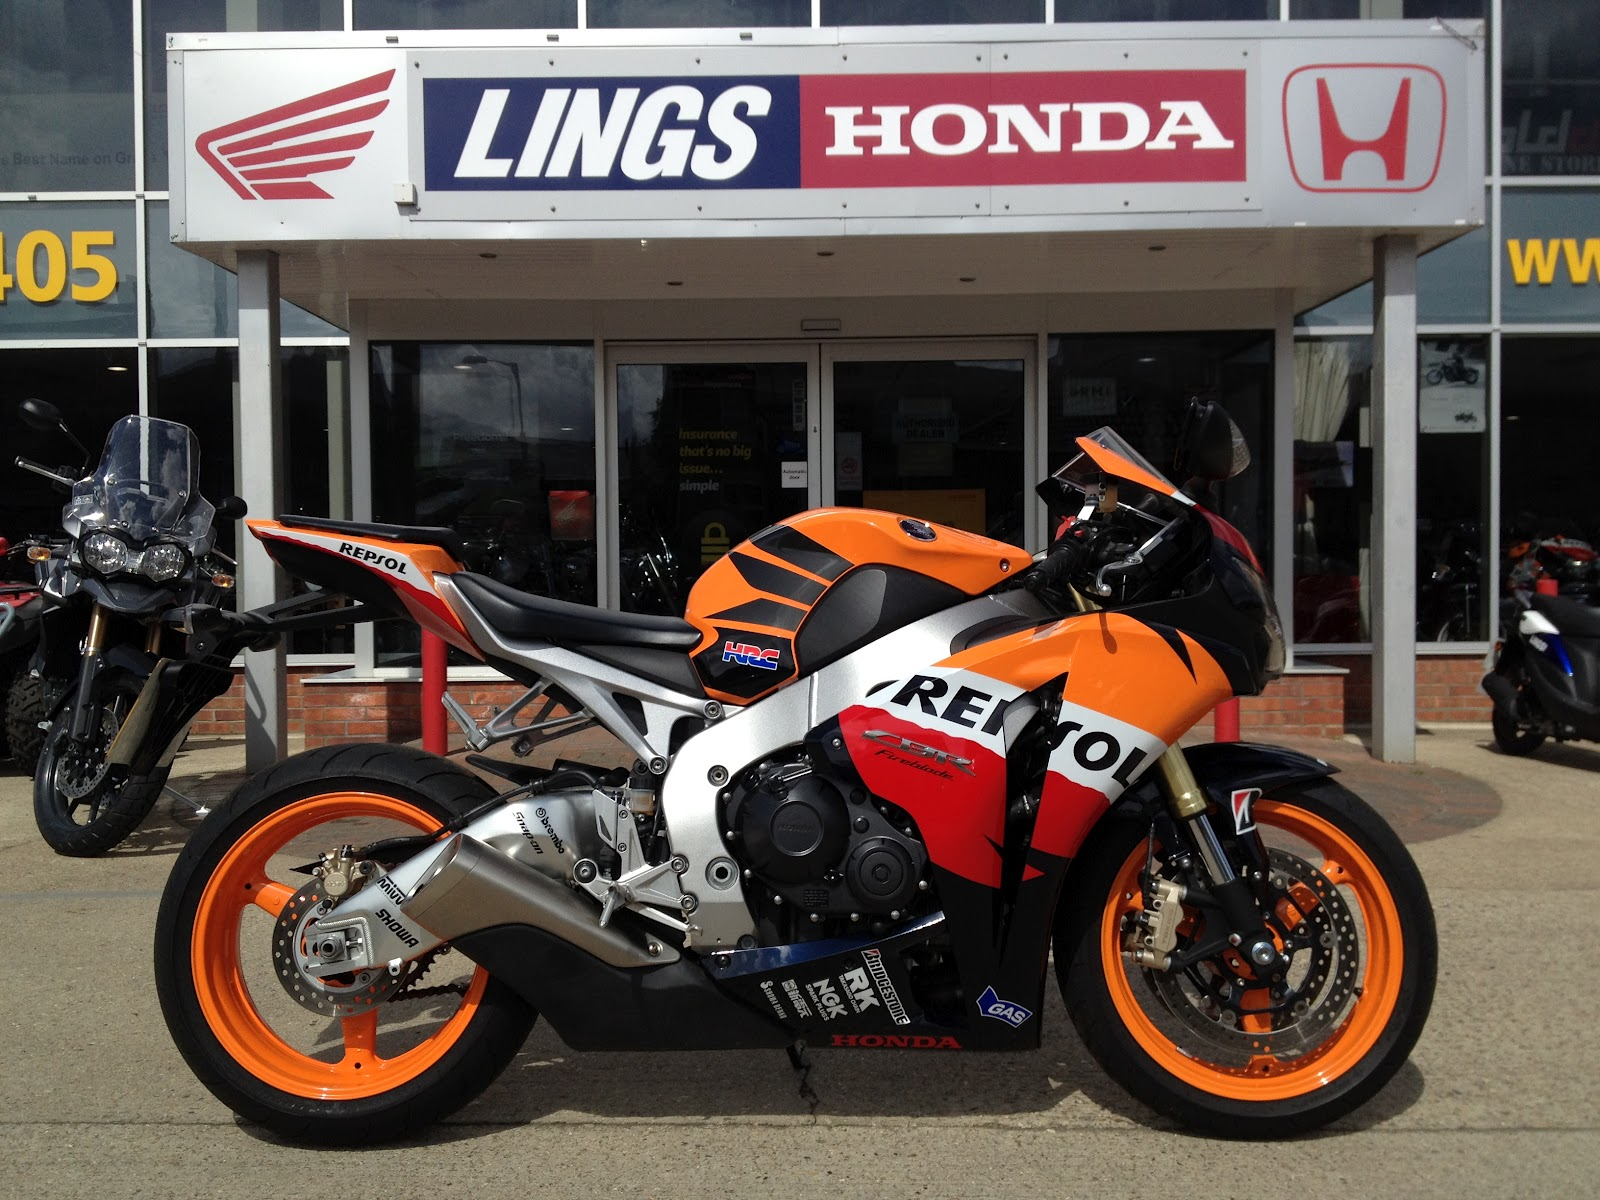 Honda Cbr1000rr Repsol For Sale Motorcycle Review